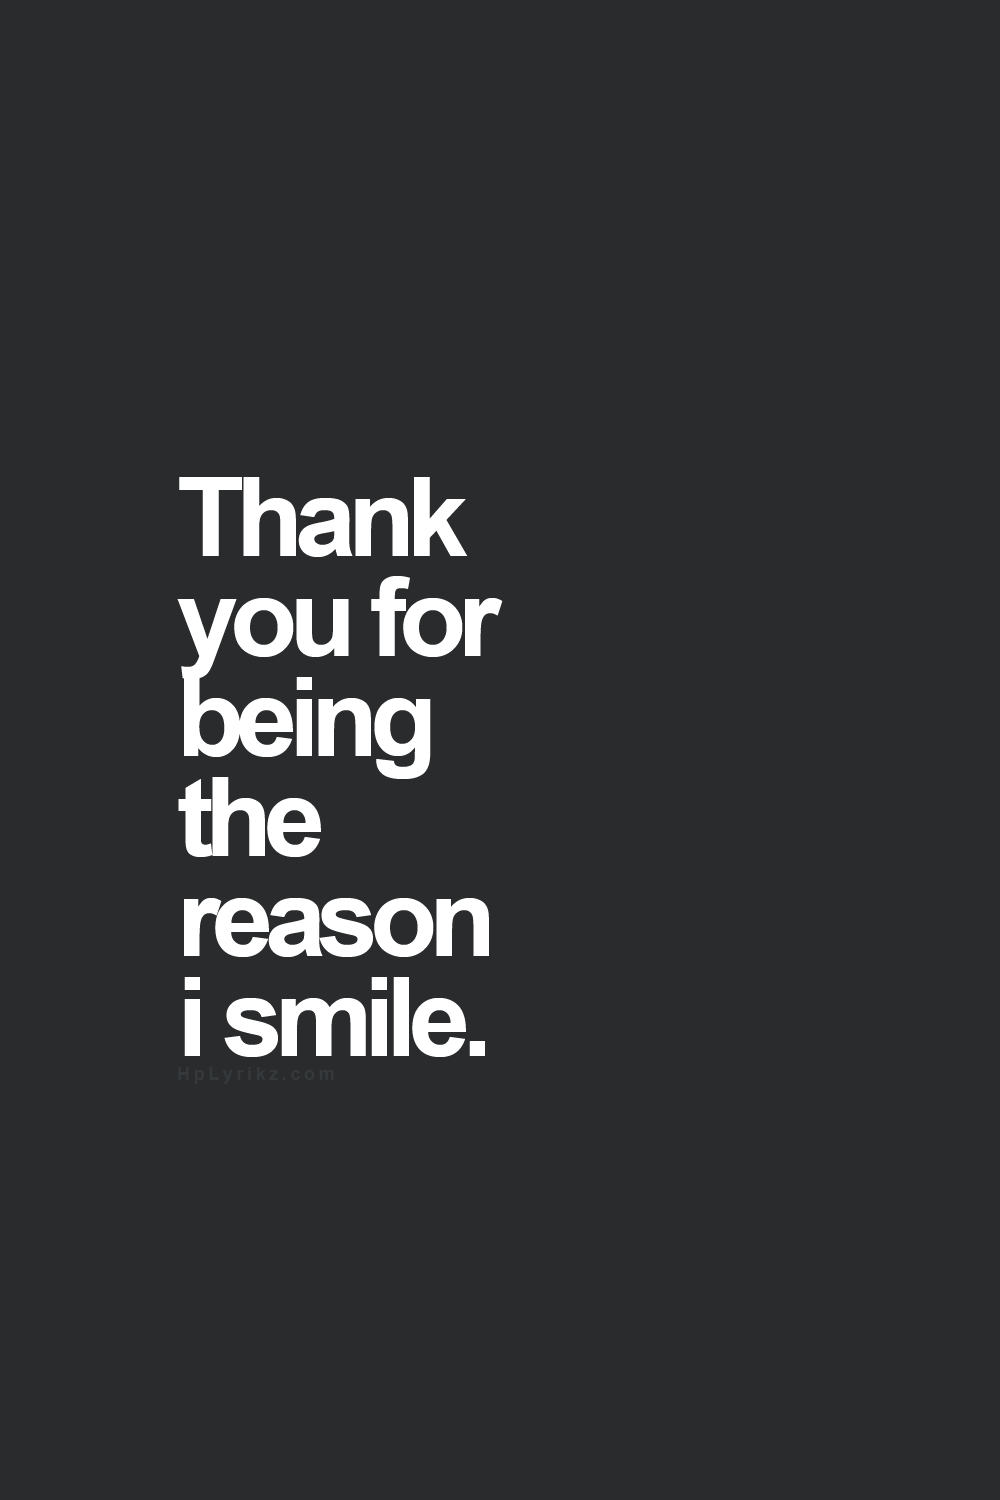 Quotes You Make Me Smile I'm Feeling Thankful Todaythankful For My Family Friends And